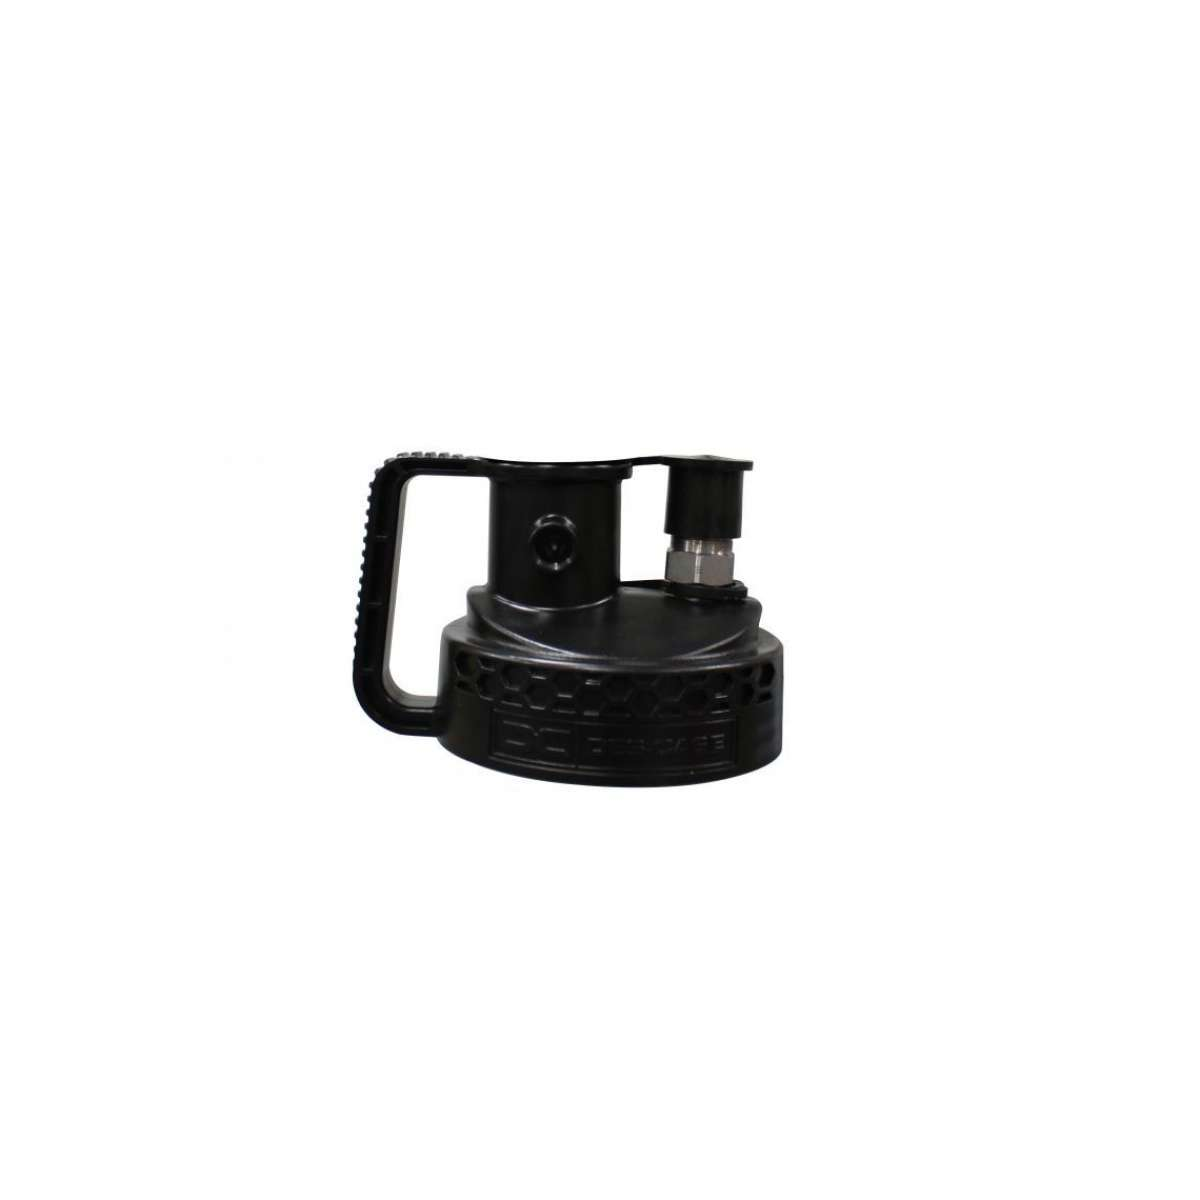 """IsoLink Pump Lid with 3/4"""" ISO B Plug & Vent Plug (no breather)"""